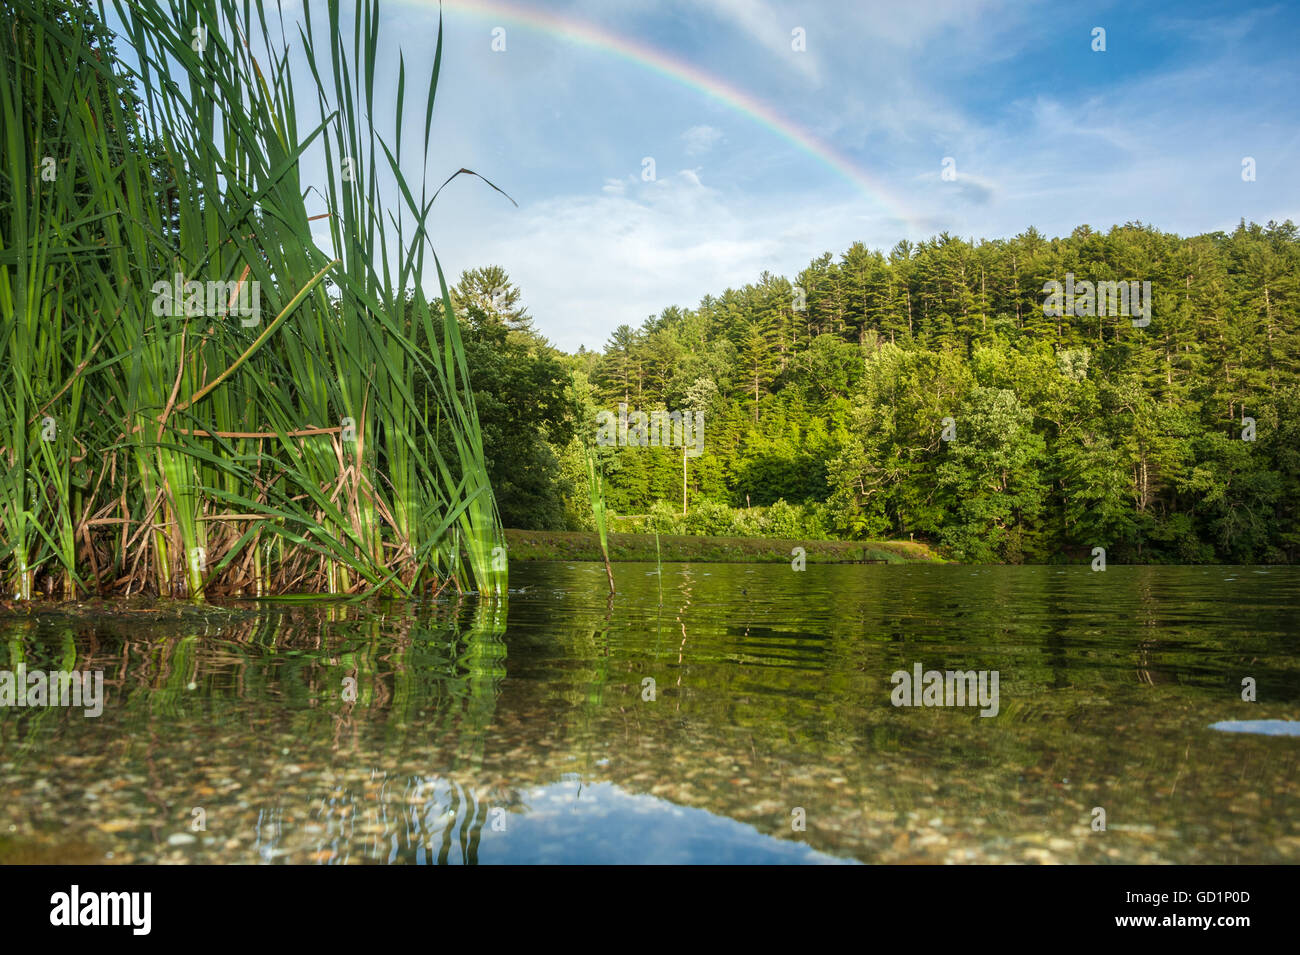 Beautiful rainbow over Lake Trahlyta at Vogel State Park in the Blue Ridge Mountains of North Georgia, USA. - Stock Image